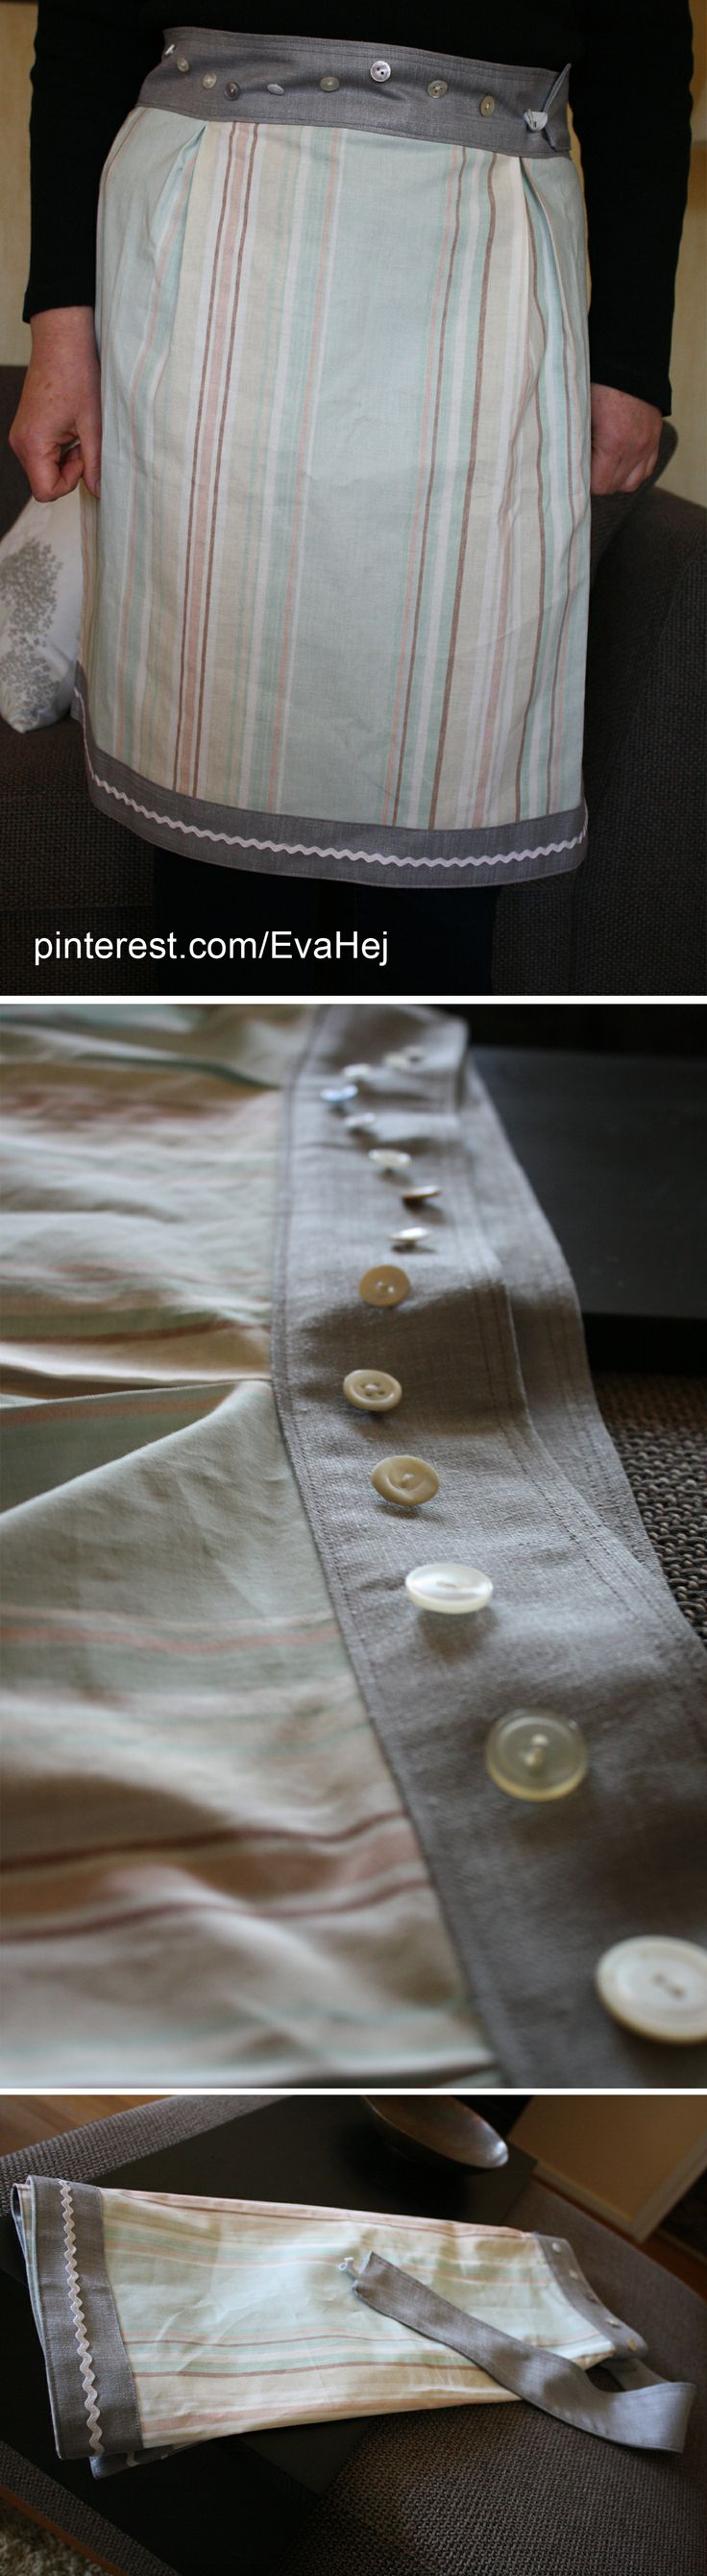 Adjustable apron that is attached at the waist with a button